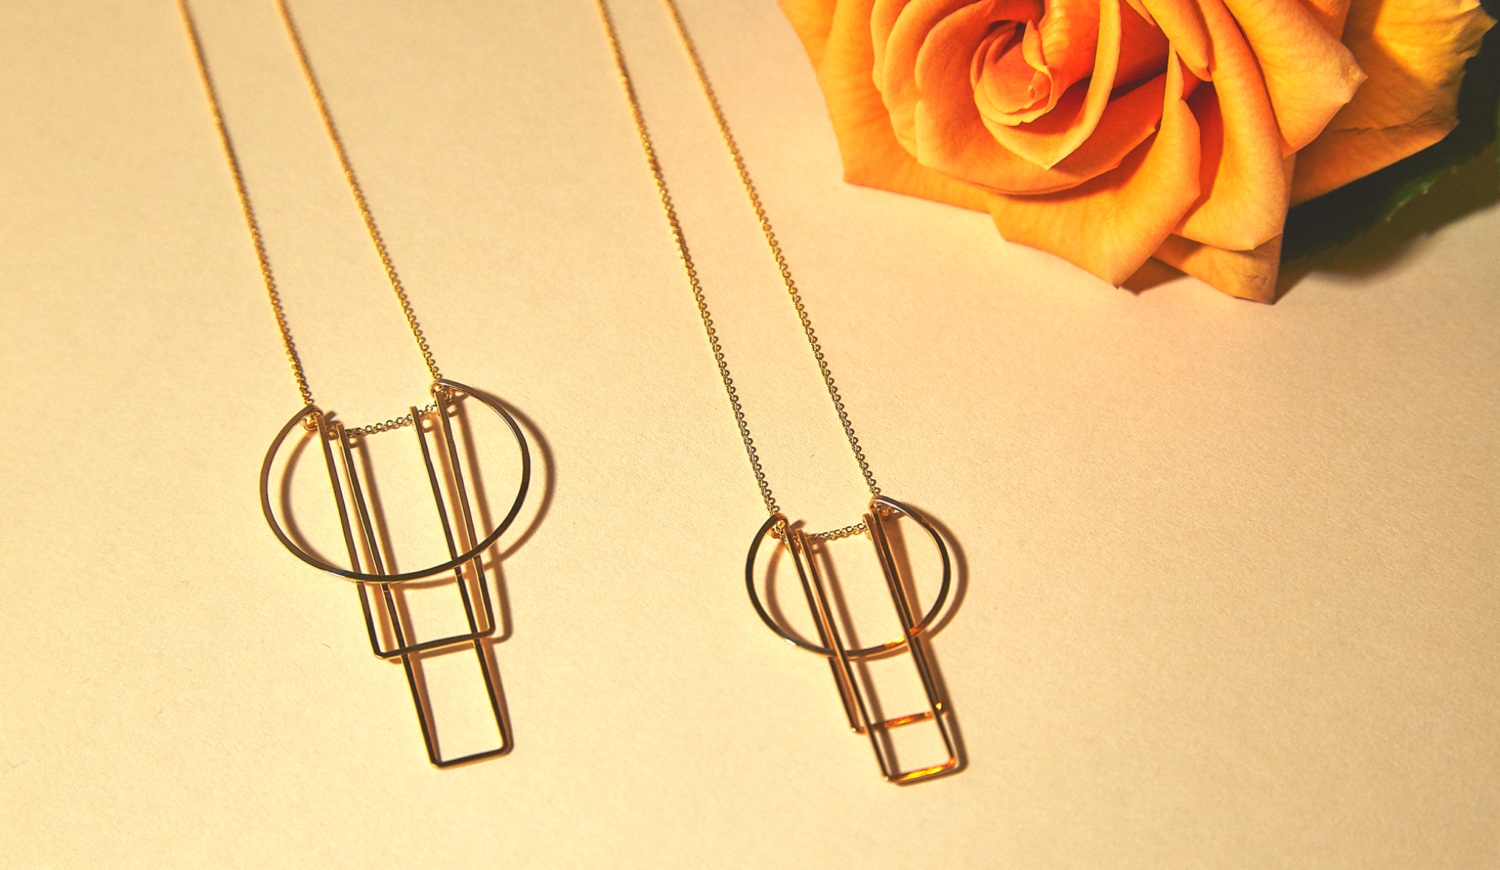 Ethical and Eco-Friendly Jewelry Gifts